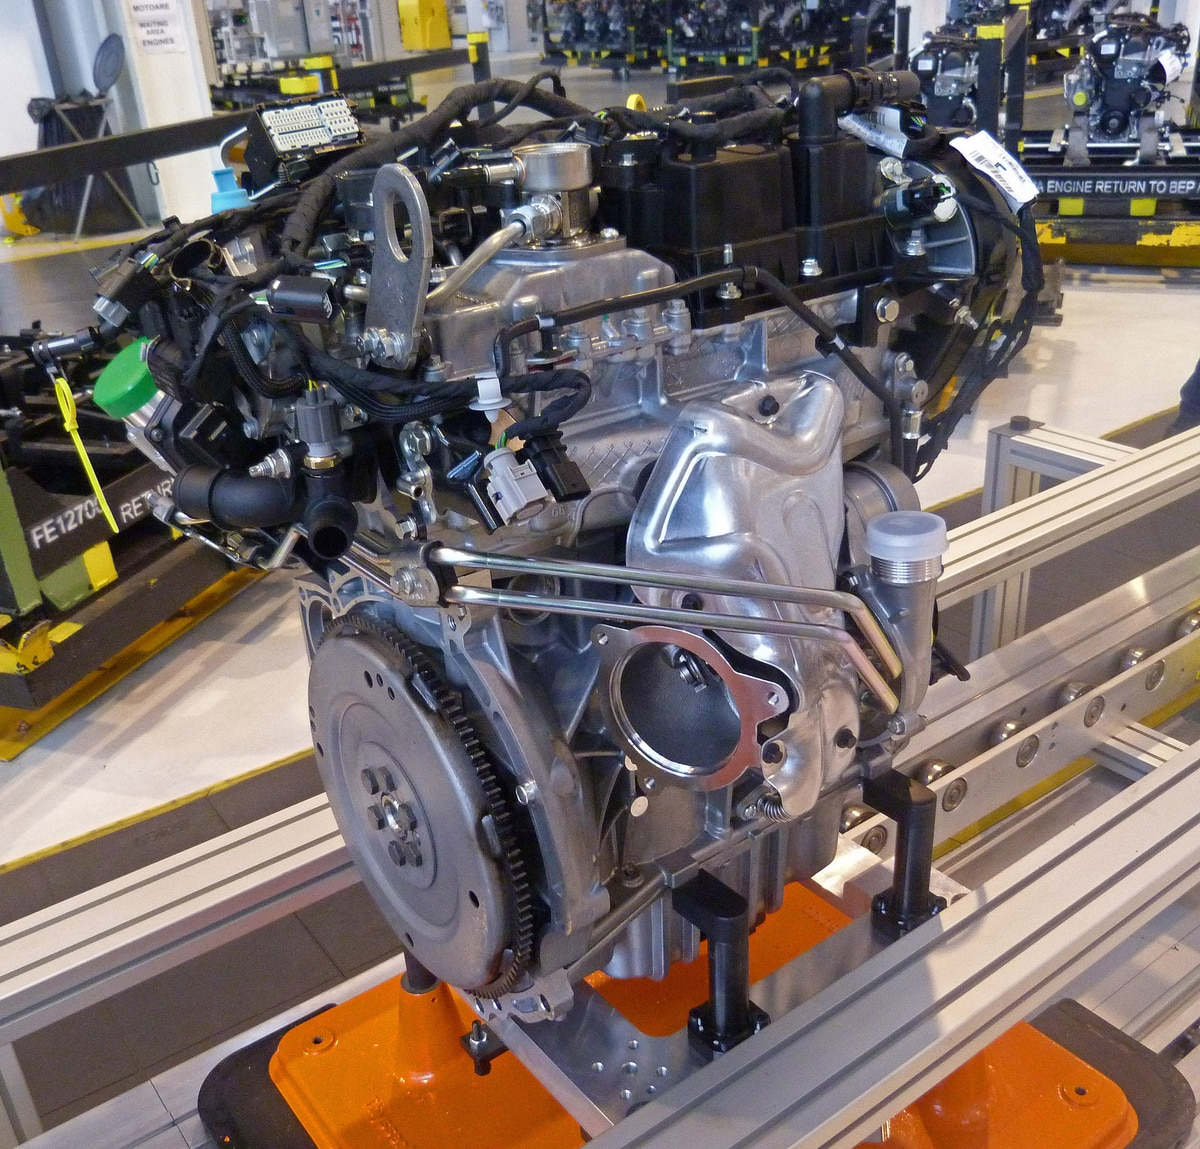 Ford Launches 15 Liter EcoBoost Engine Plans 9 10 Speed Transmissions With